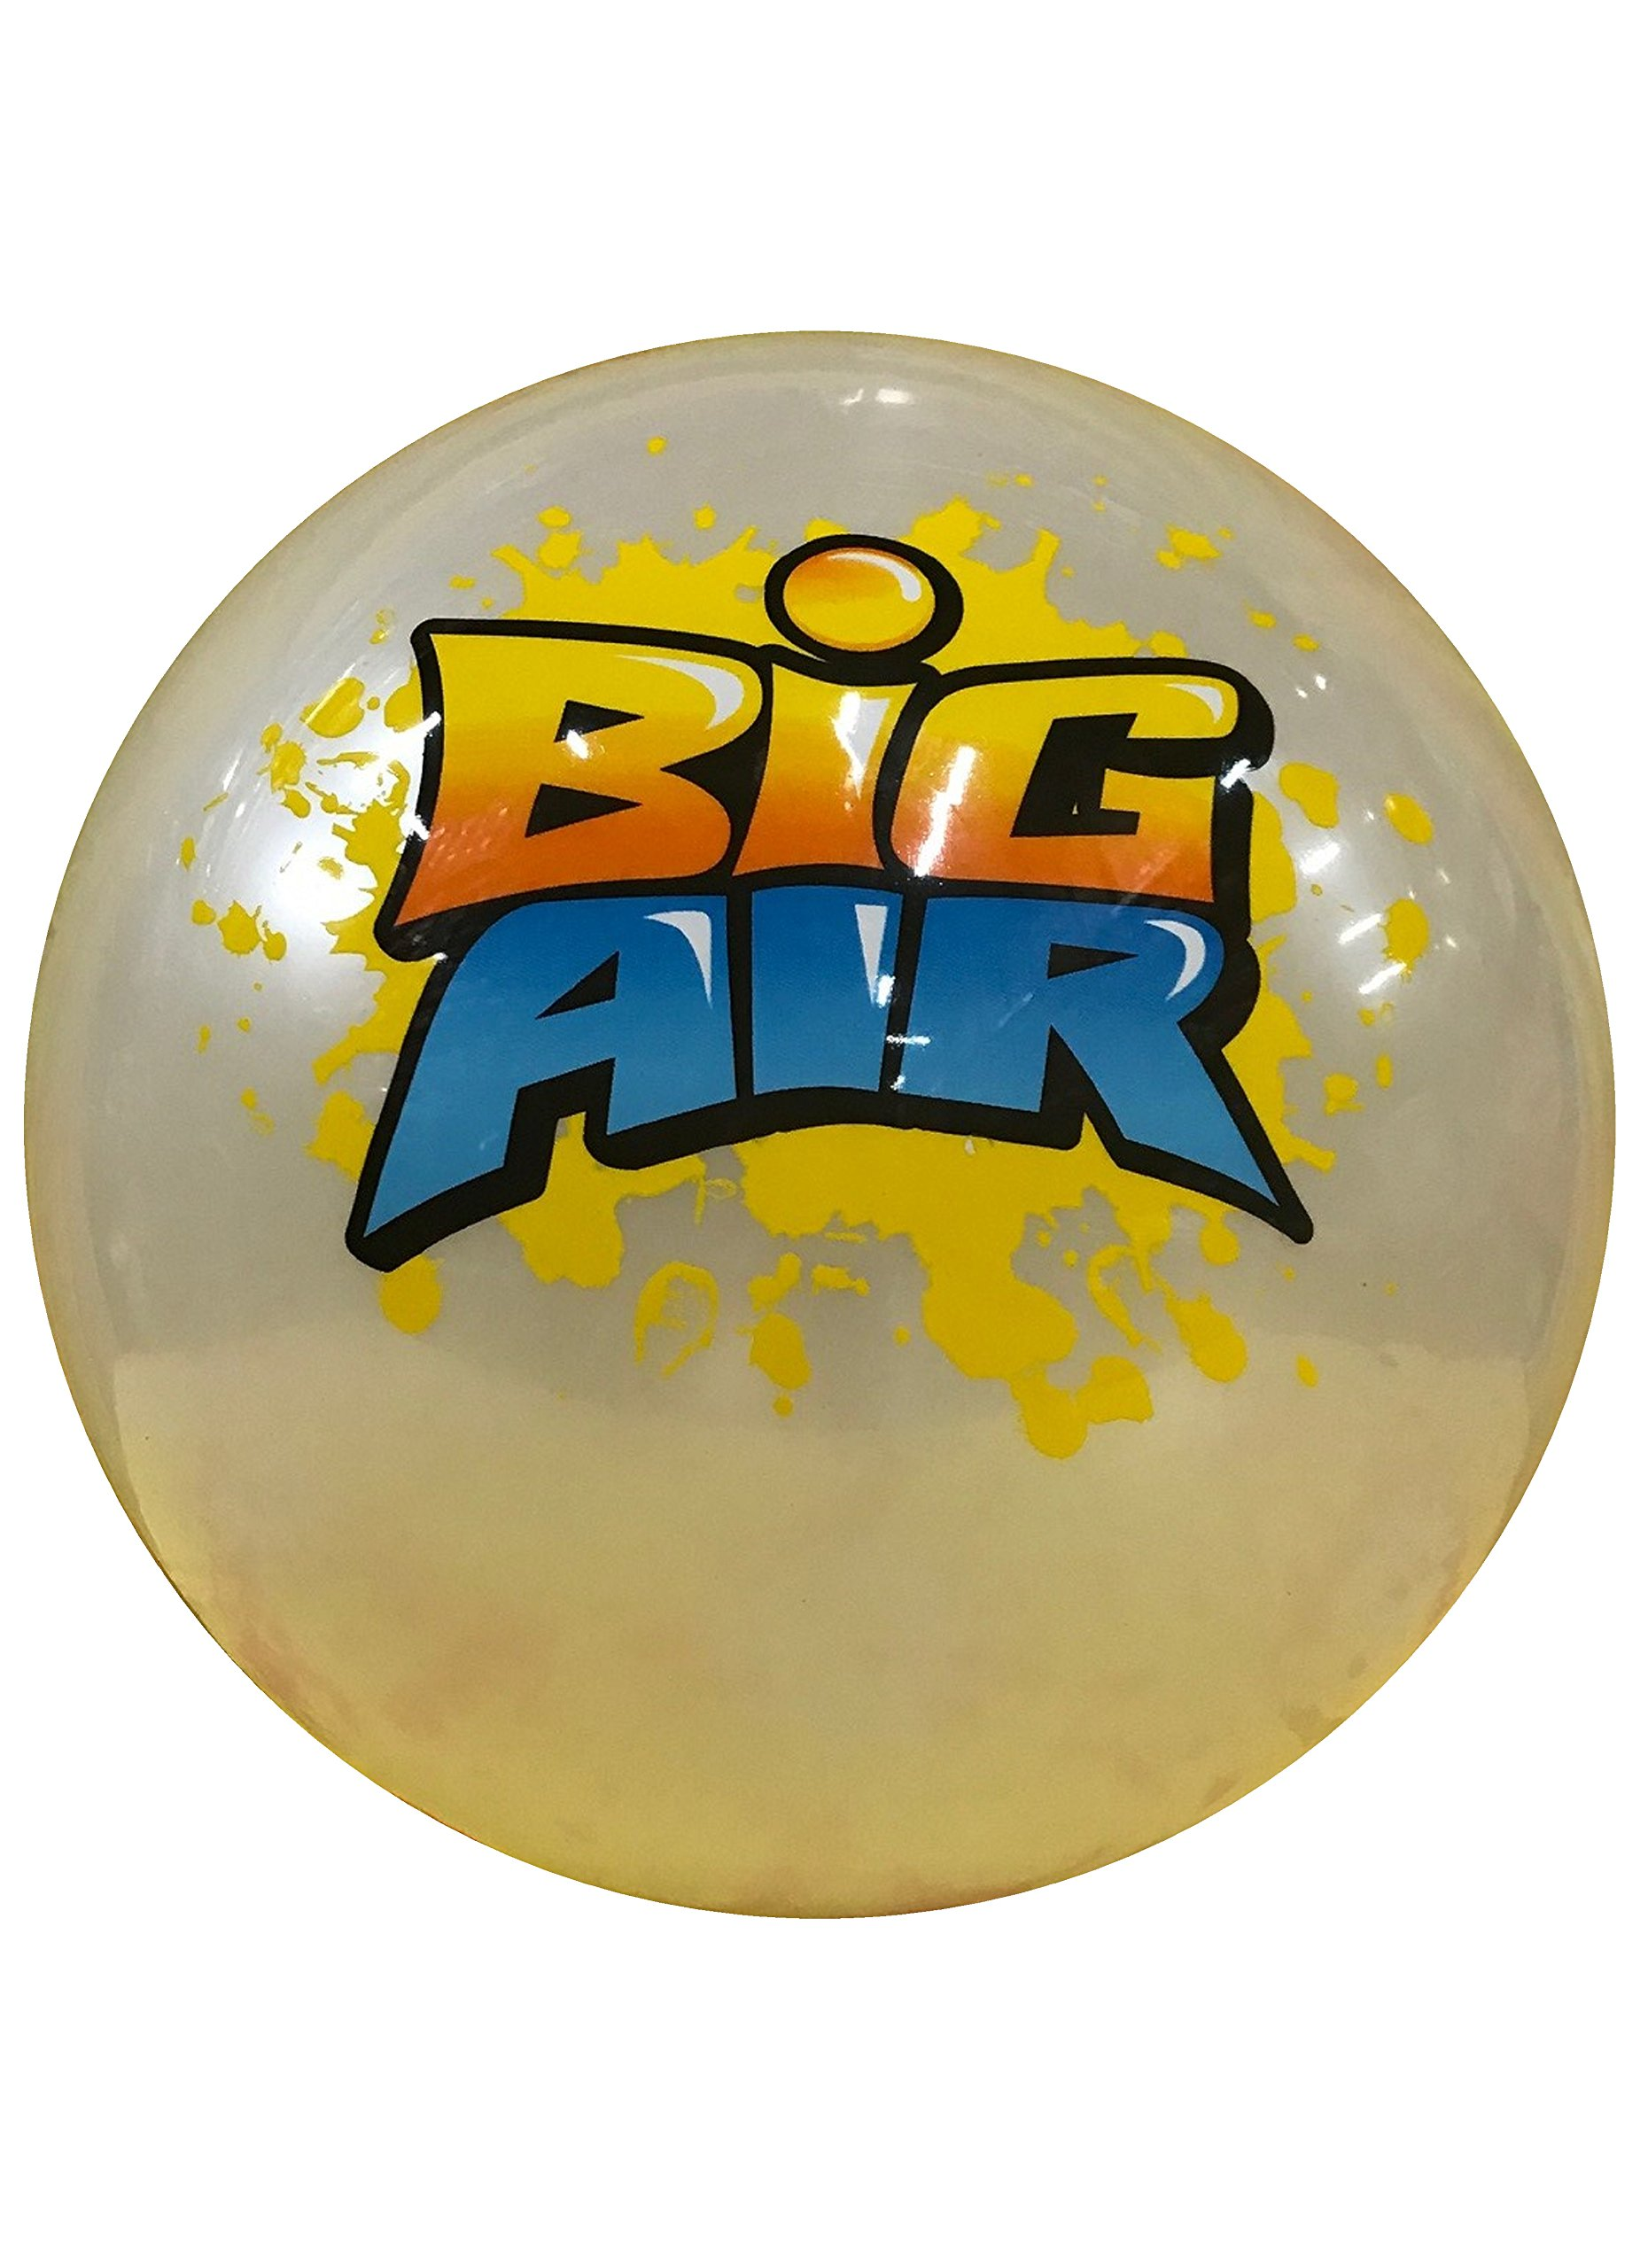 Wave Runner Big Air Inflatable Giant Beach Ball Size Large 18'' Water Bouncing Ball. Great Kids and Adult Boys and Girls for Pool Beach Pond Lake Activities Summer Toy Gift Under 10 (White, Large) by Wave Runner